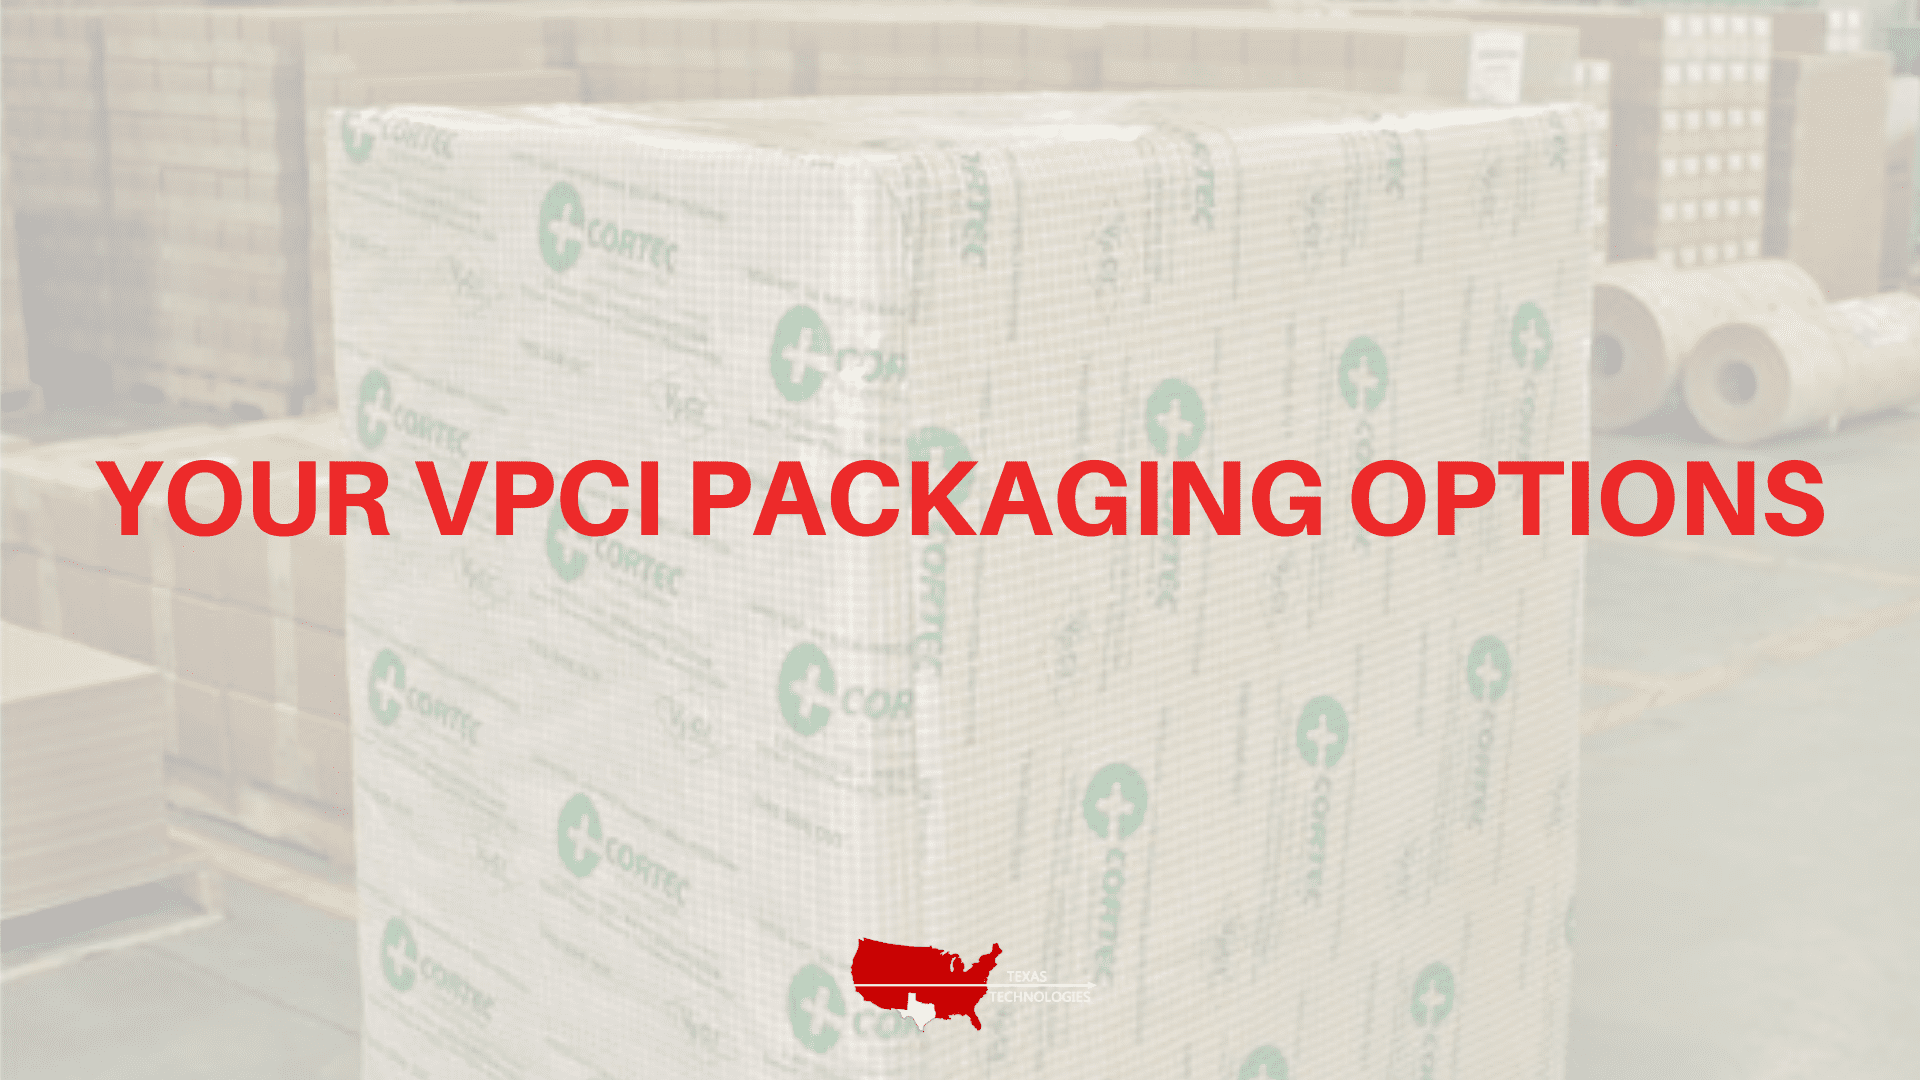 Your VpCI Packaging Options